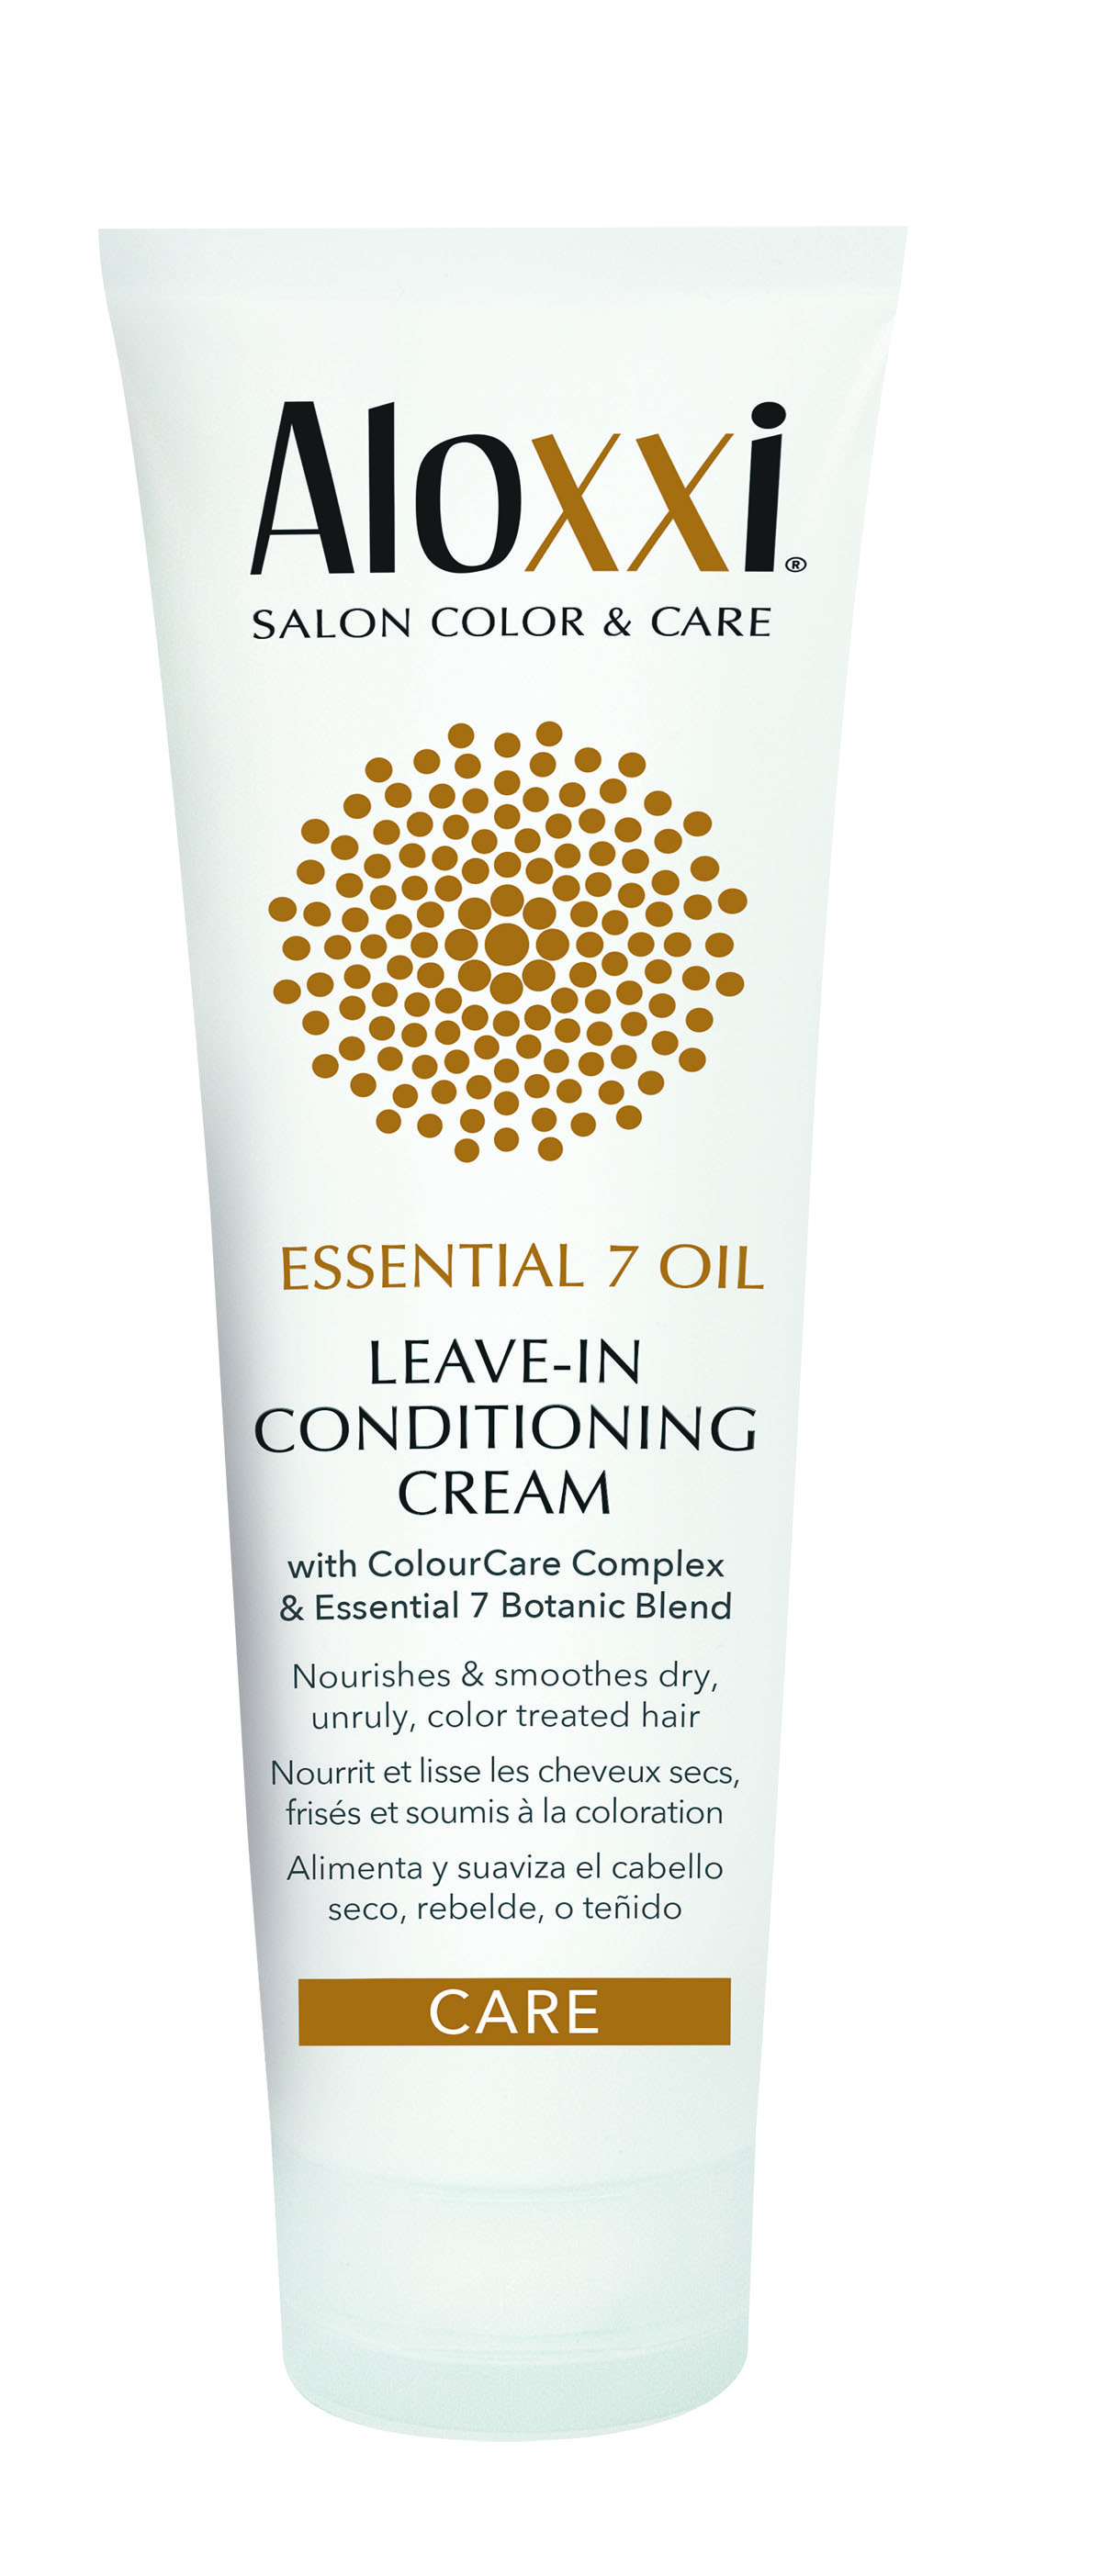 Aloxxi Essential 7 Oil Leave-In Conditioning Cream is perfect for wavy-haired clients. A blend of 10 antioxidant extracts weightlessly restores hydration and elasticity to the hair.